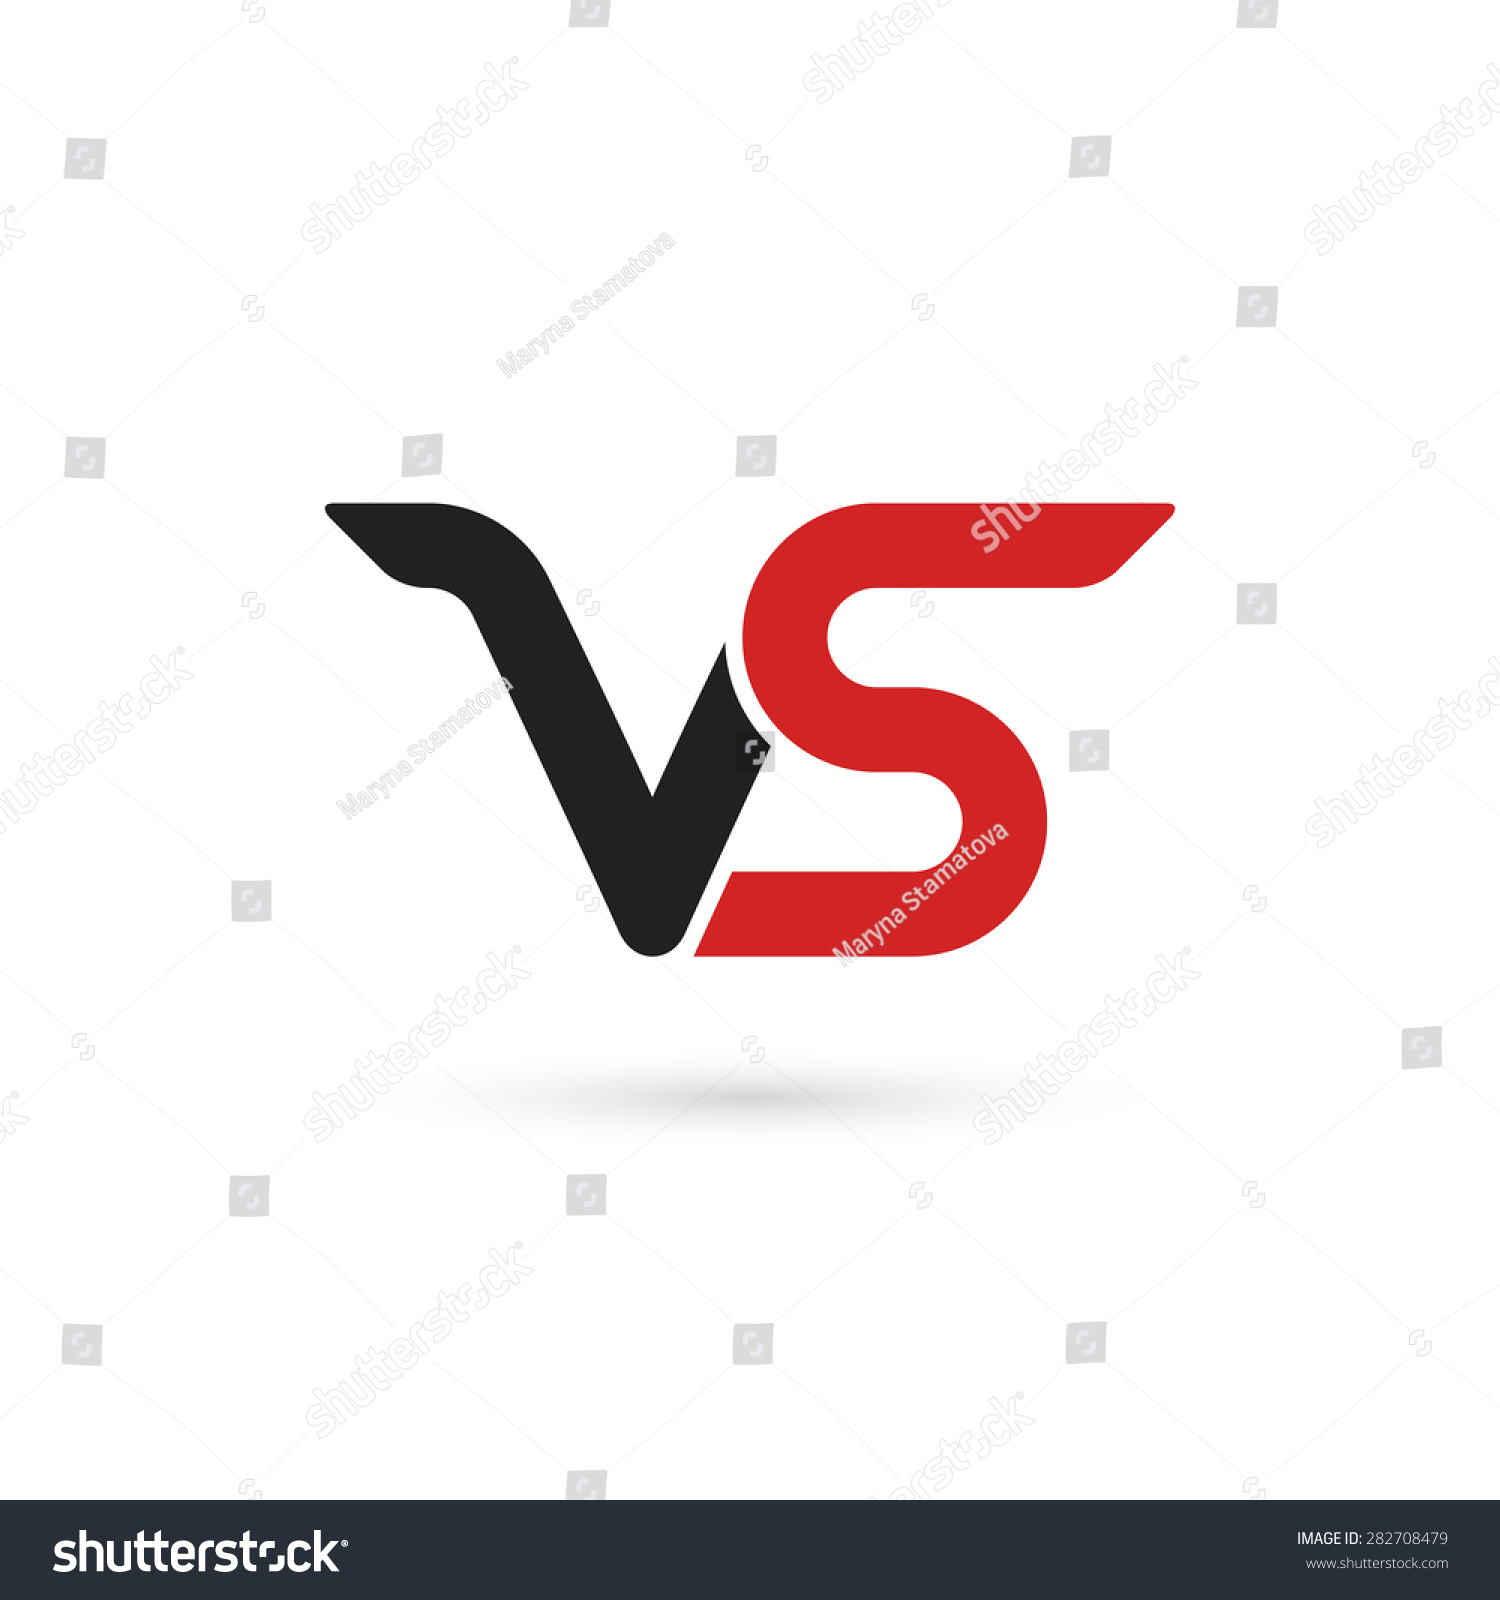 Versus Letters Logo Letters V S Stock Vector Royalty Free